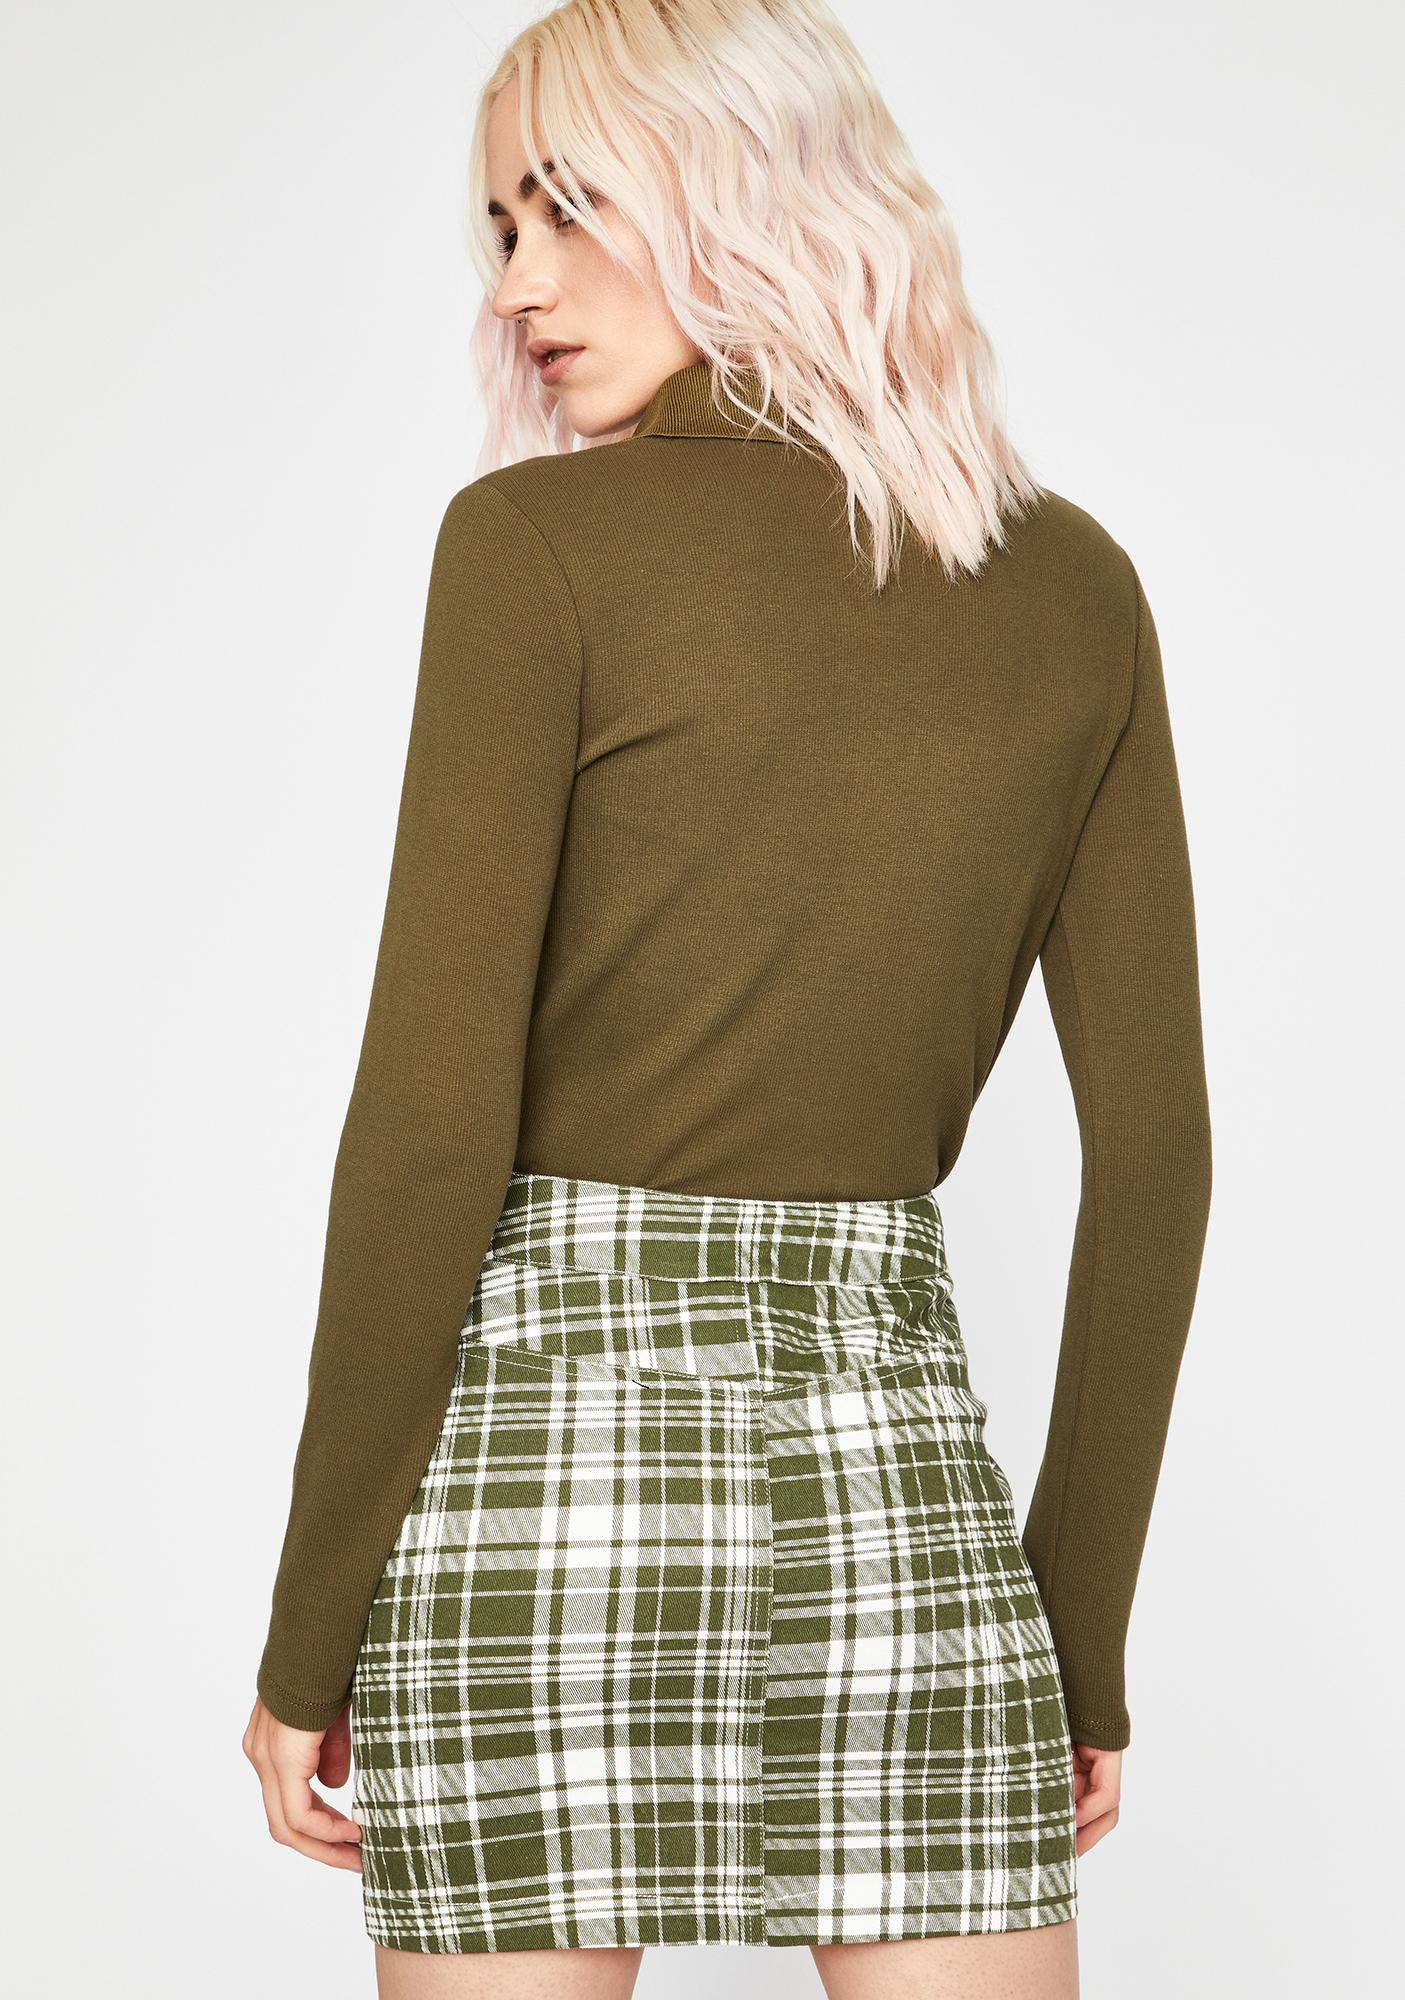 Picnic Basket Plaid Skirt